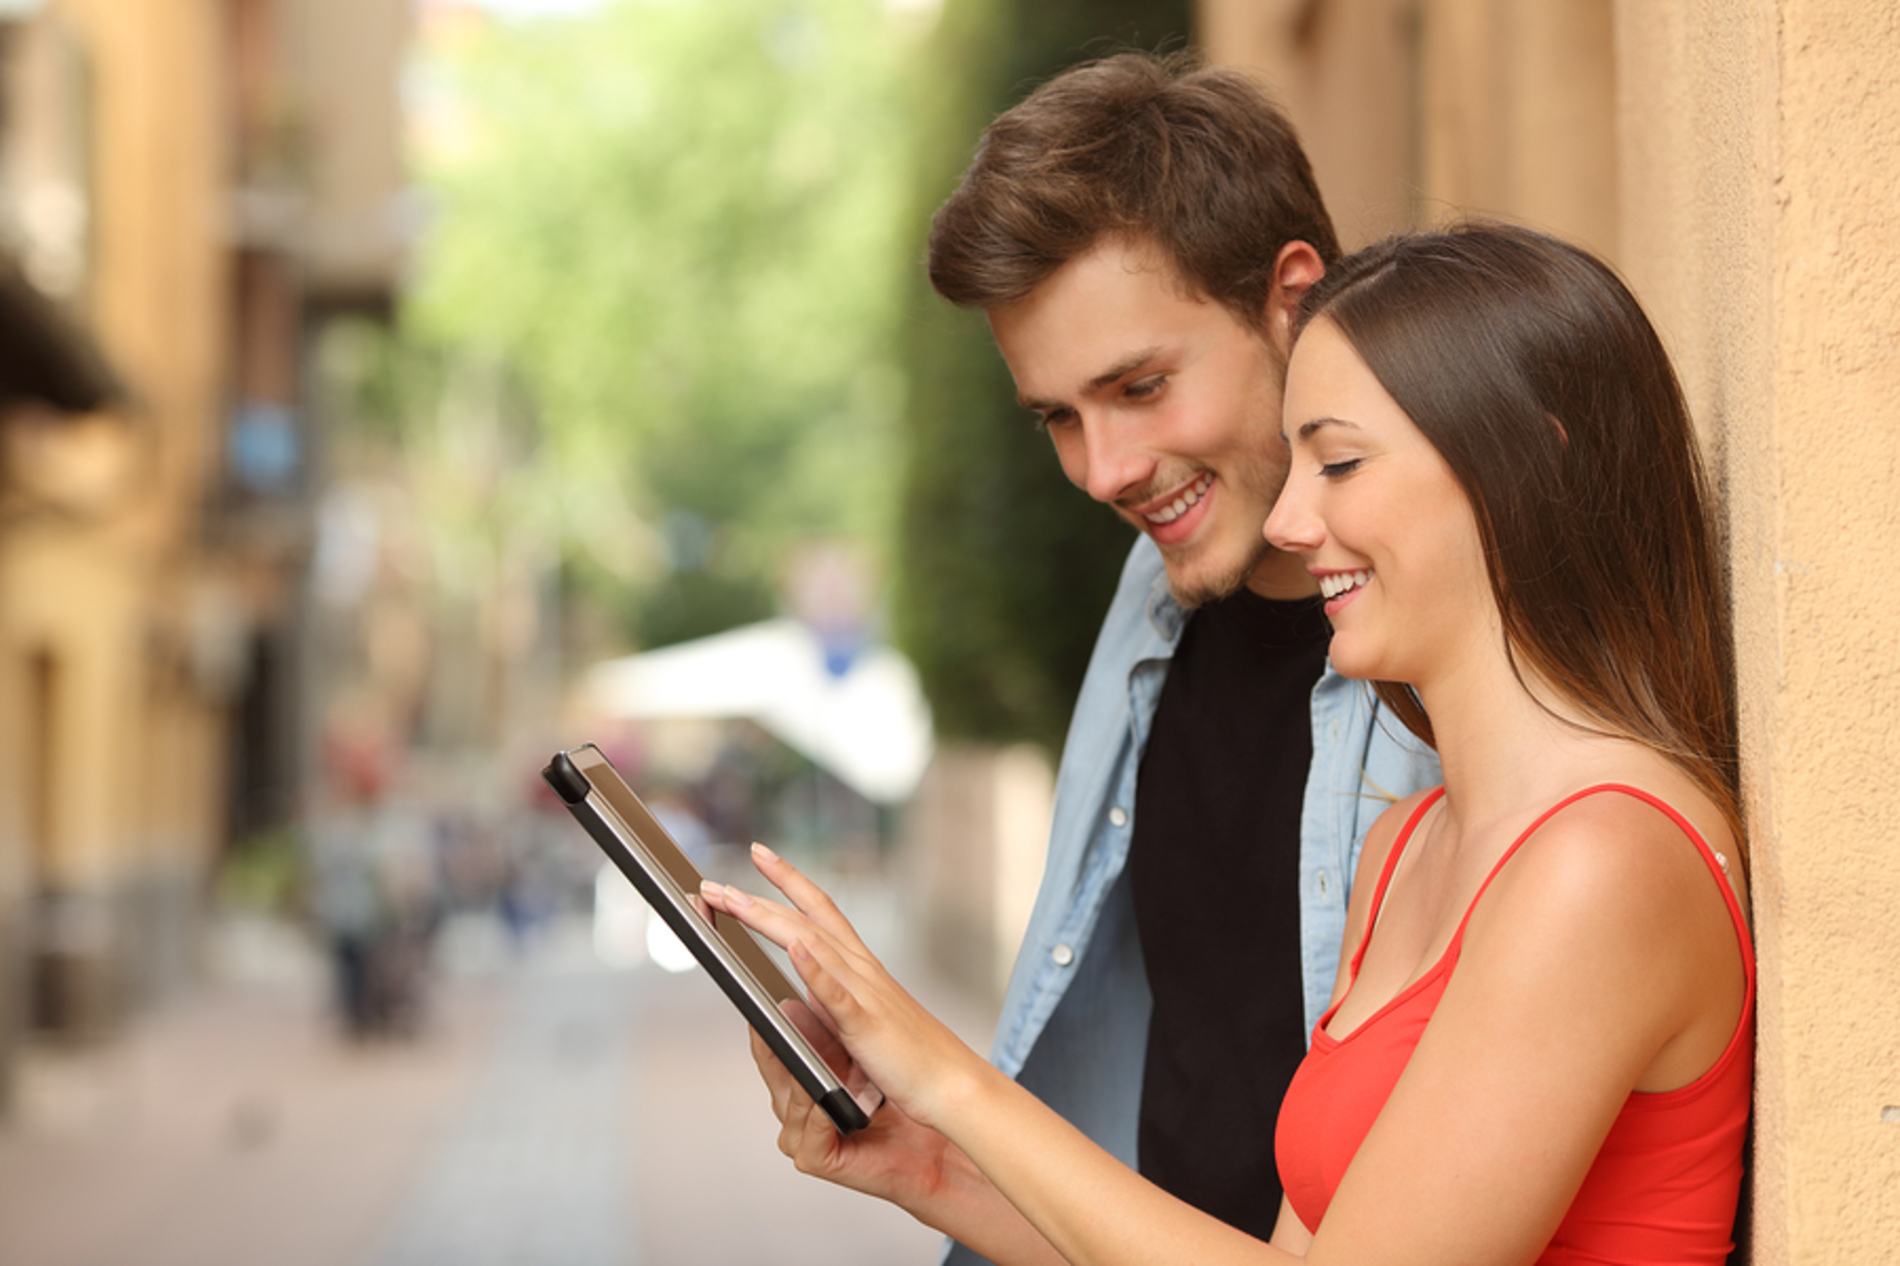 Two people leaning against a well using a tablet to find local businesses.